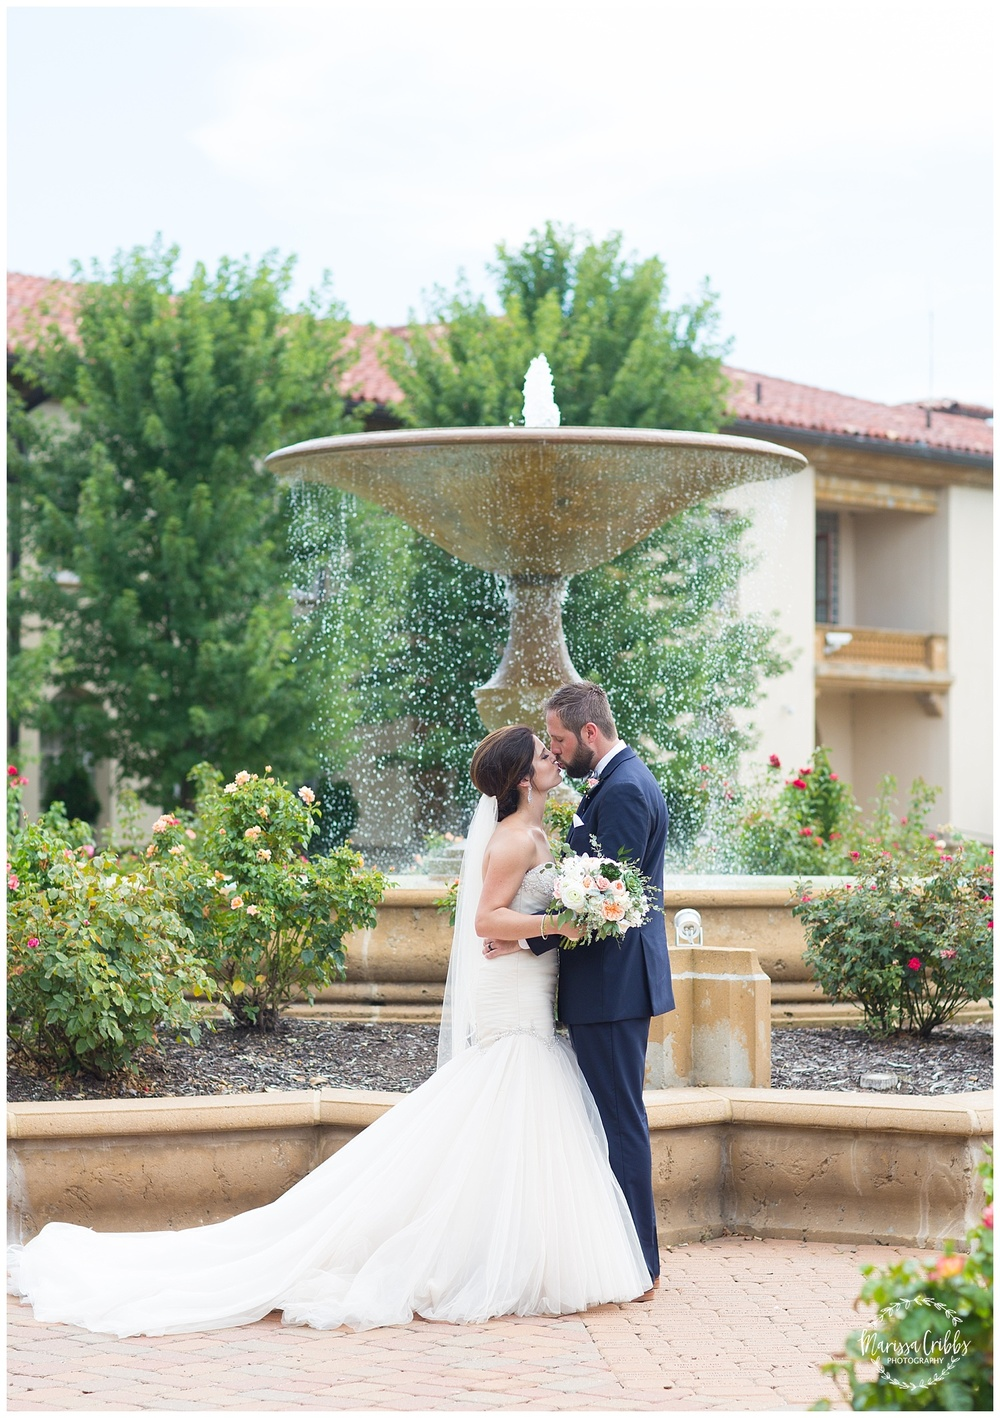 Stonehaus Winery Wedding | KC Wedding Photographer | Marissa Cribbs Photography | The Pavilion Event Space_0446.jpg